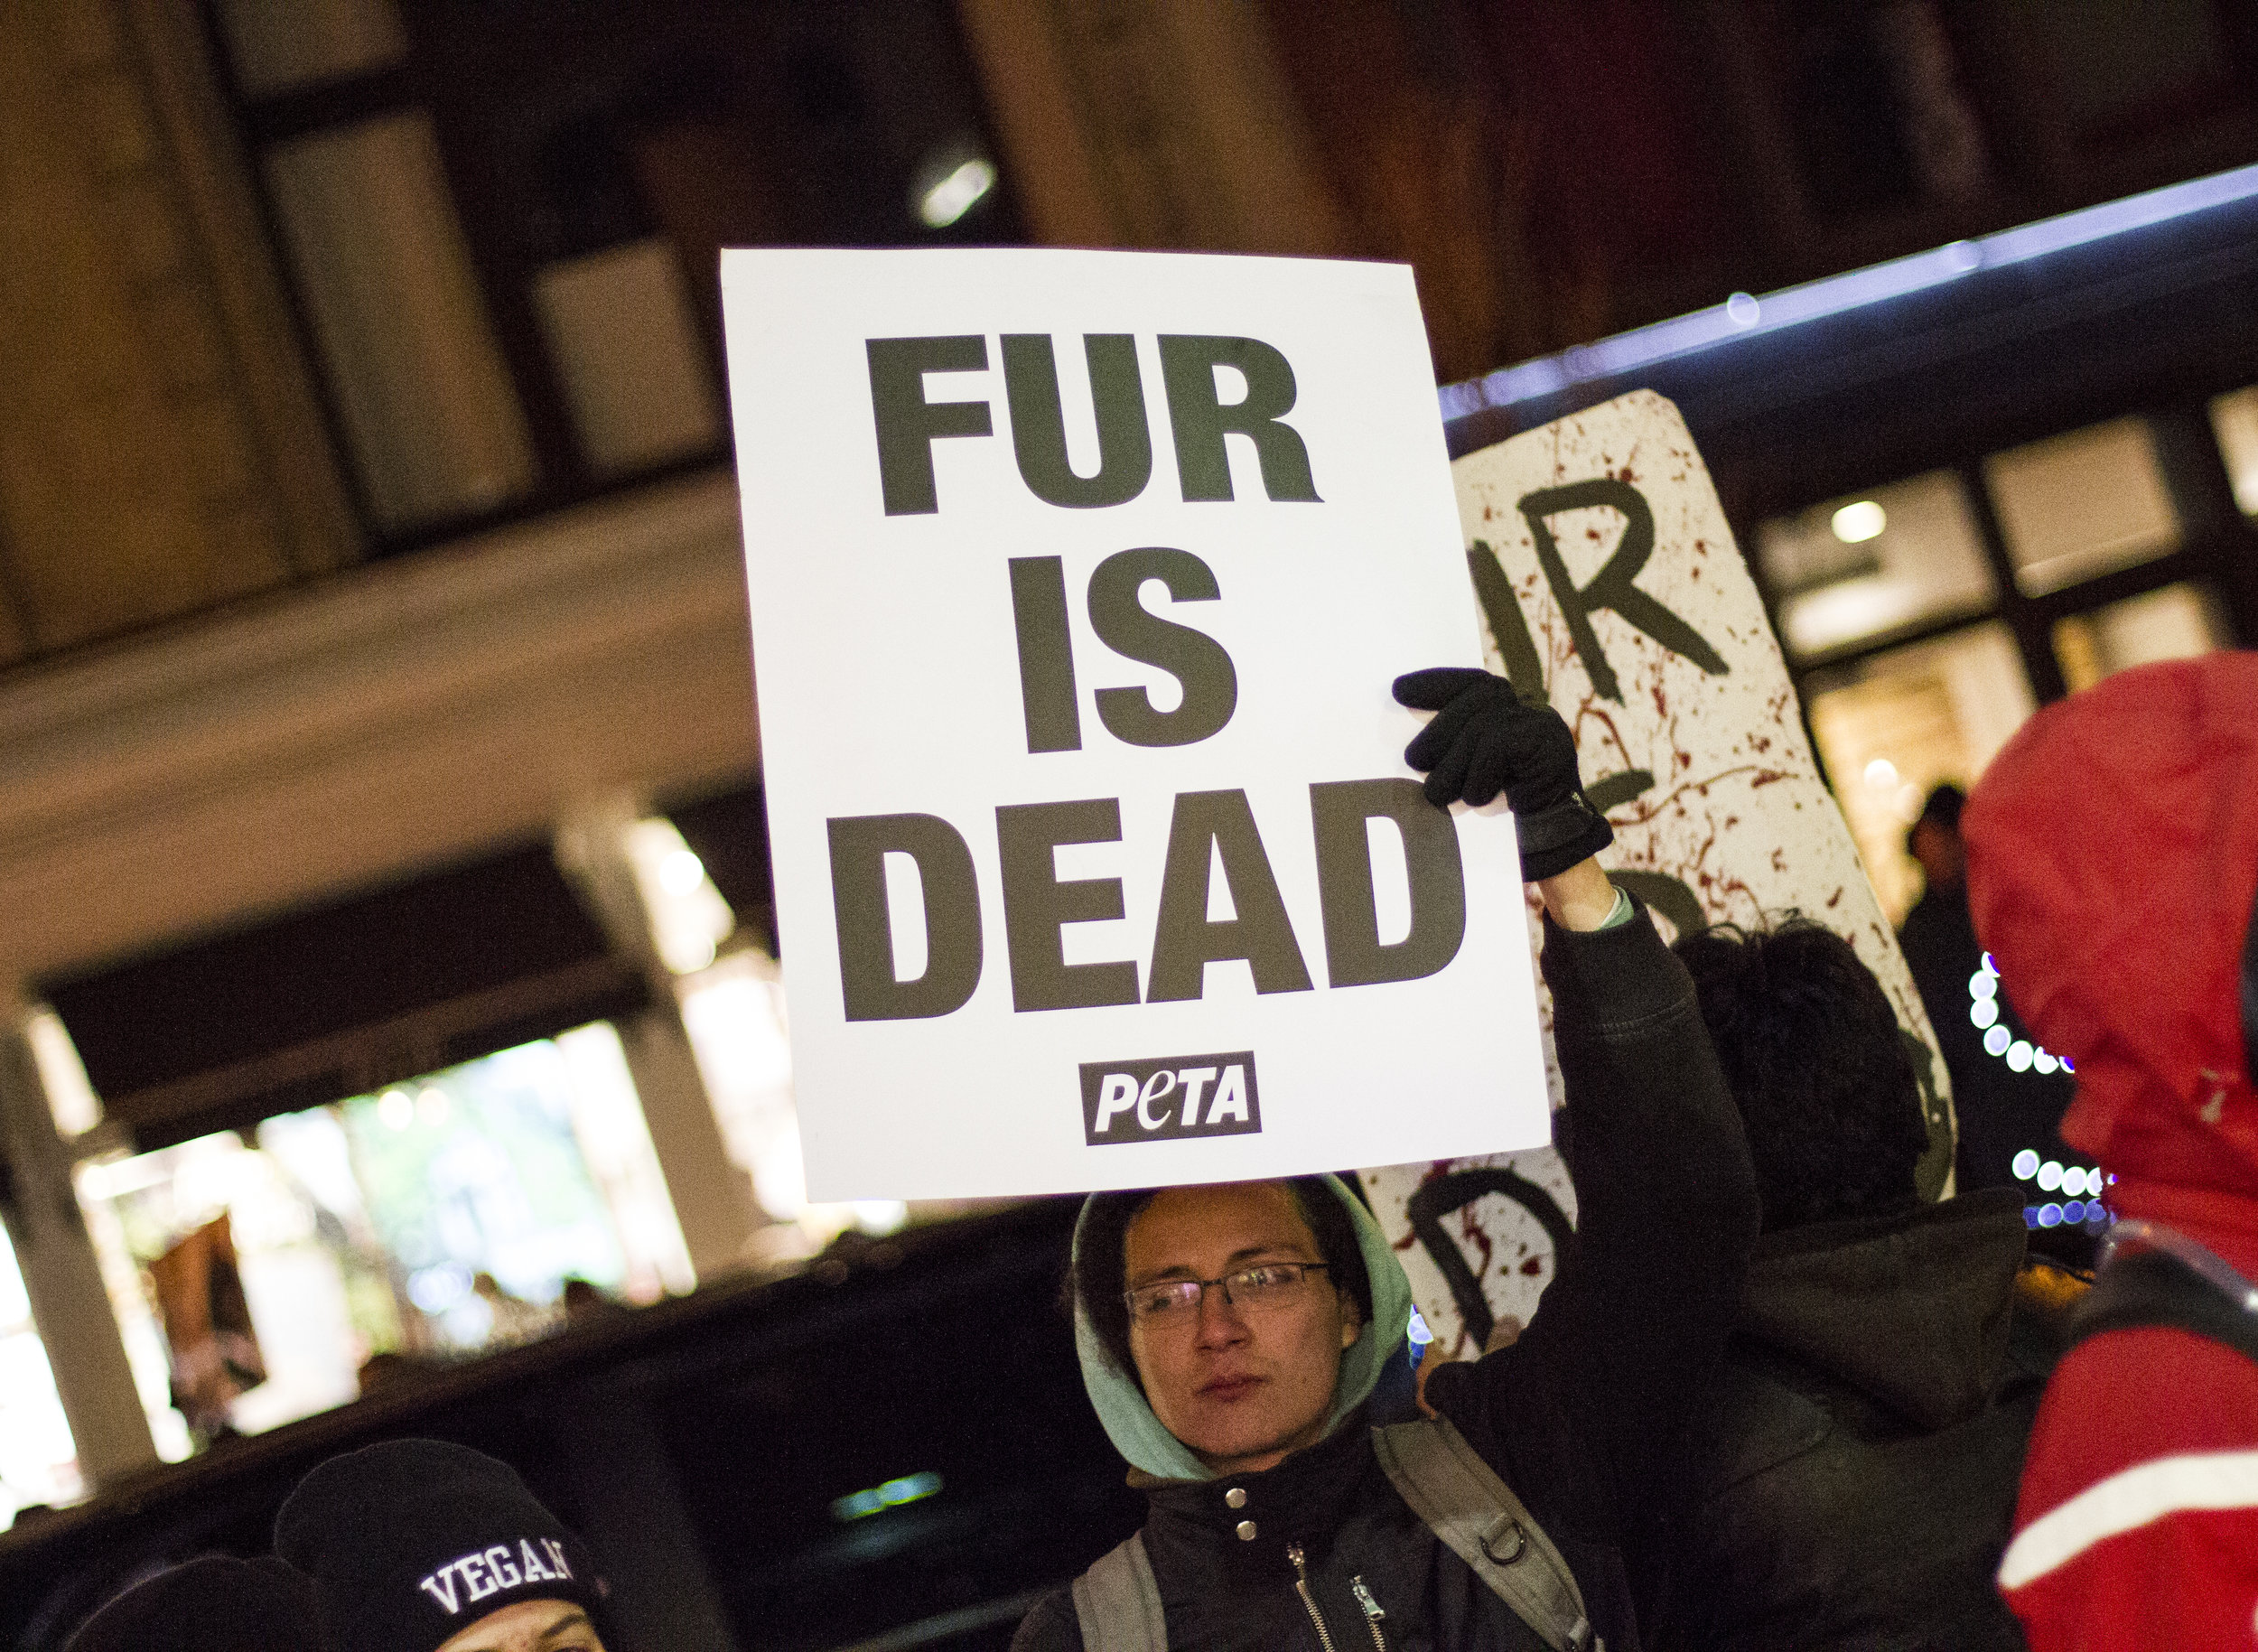 Fur is the product of cruelty, suffering, and slaughter, and those who choose to wear it are choosing to be complicit in the deaths of those animals from whose bodies the fur was taken. Why choose fur, when so many  cruelty-free alternatives  exist?